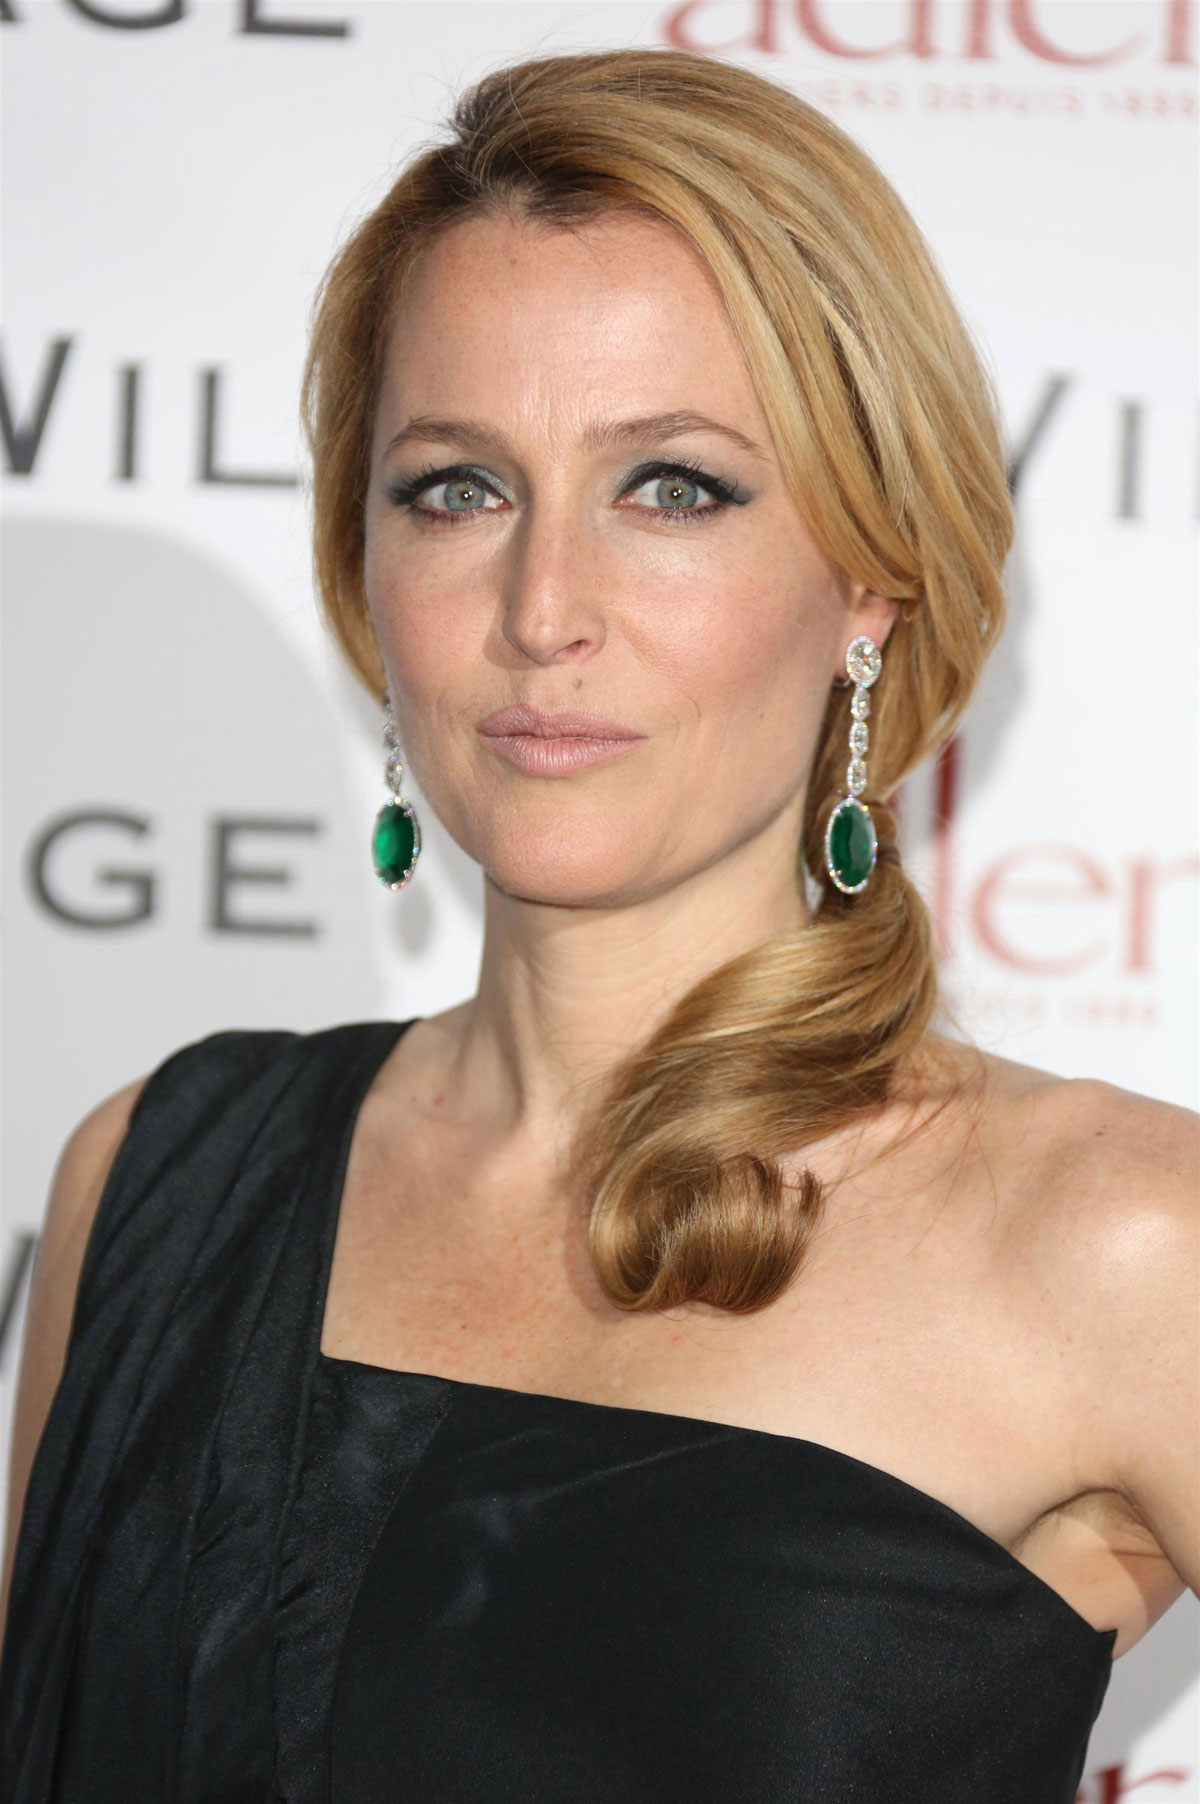 gillian anderson - photo #46